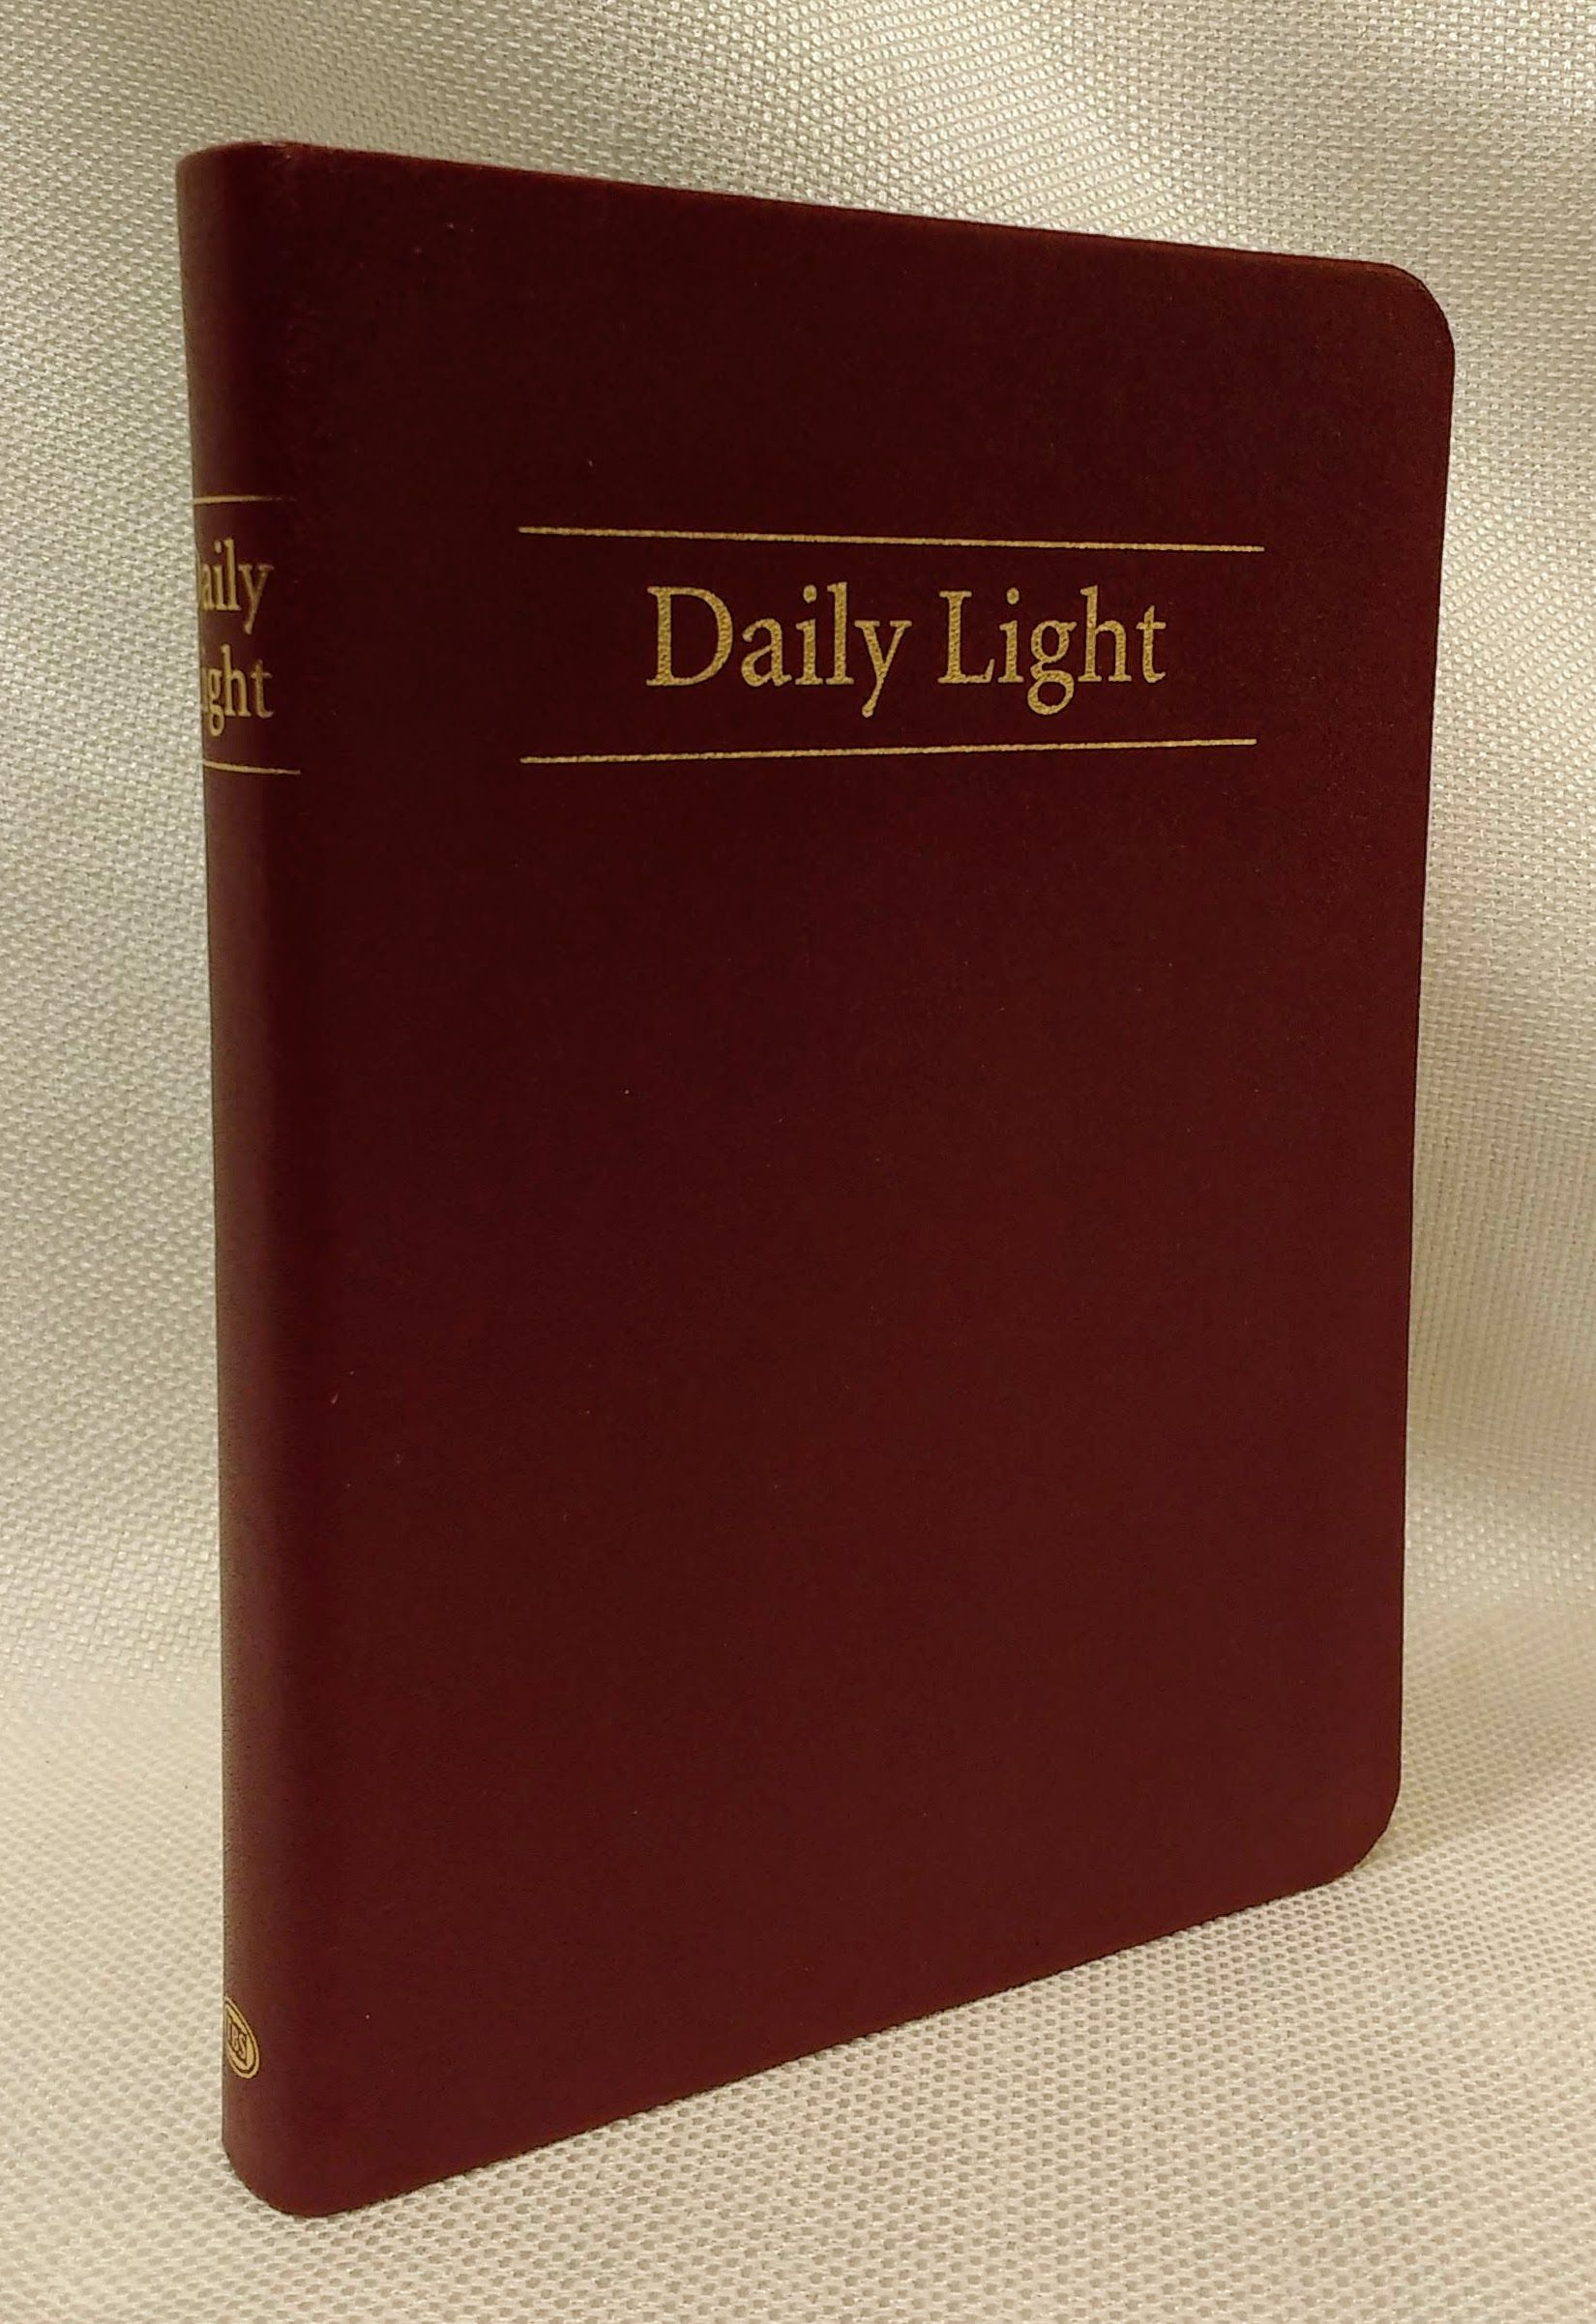 Daily Light (Red Leather Edition)